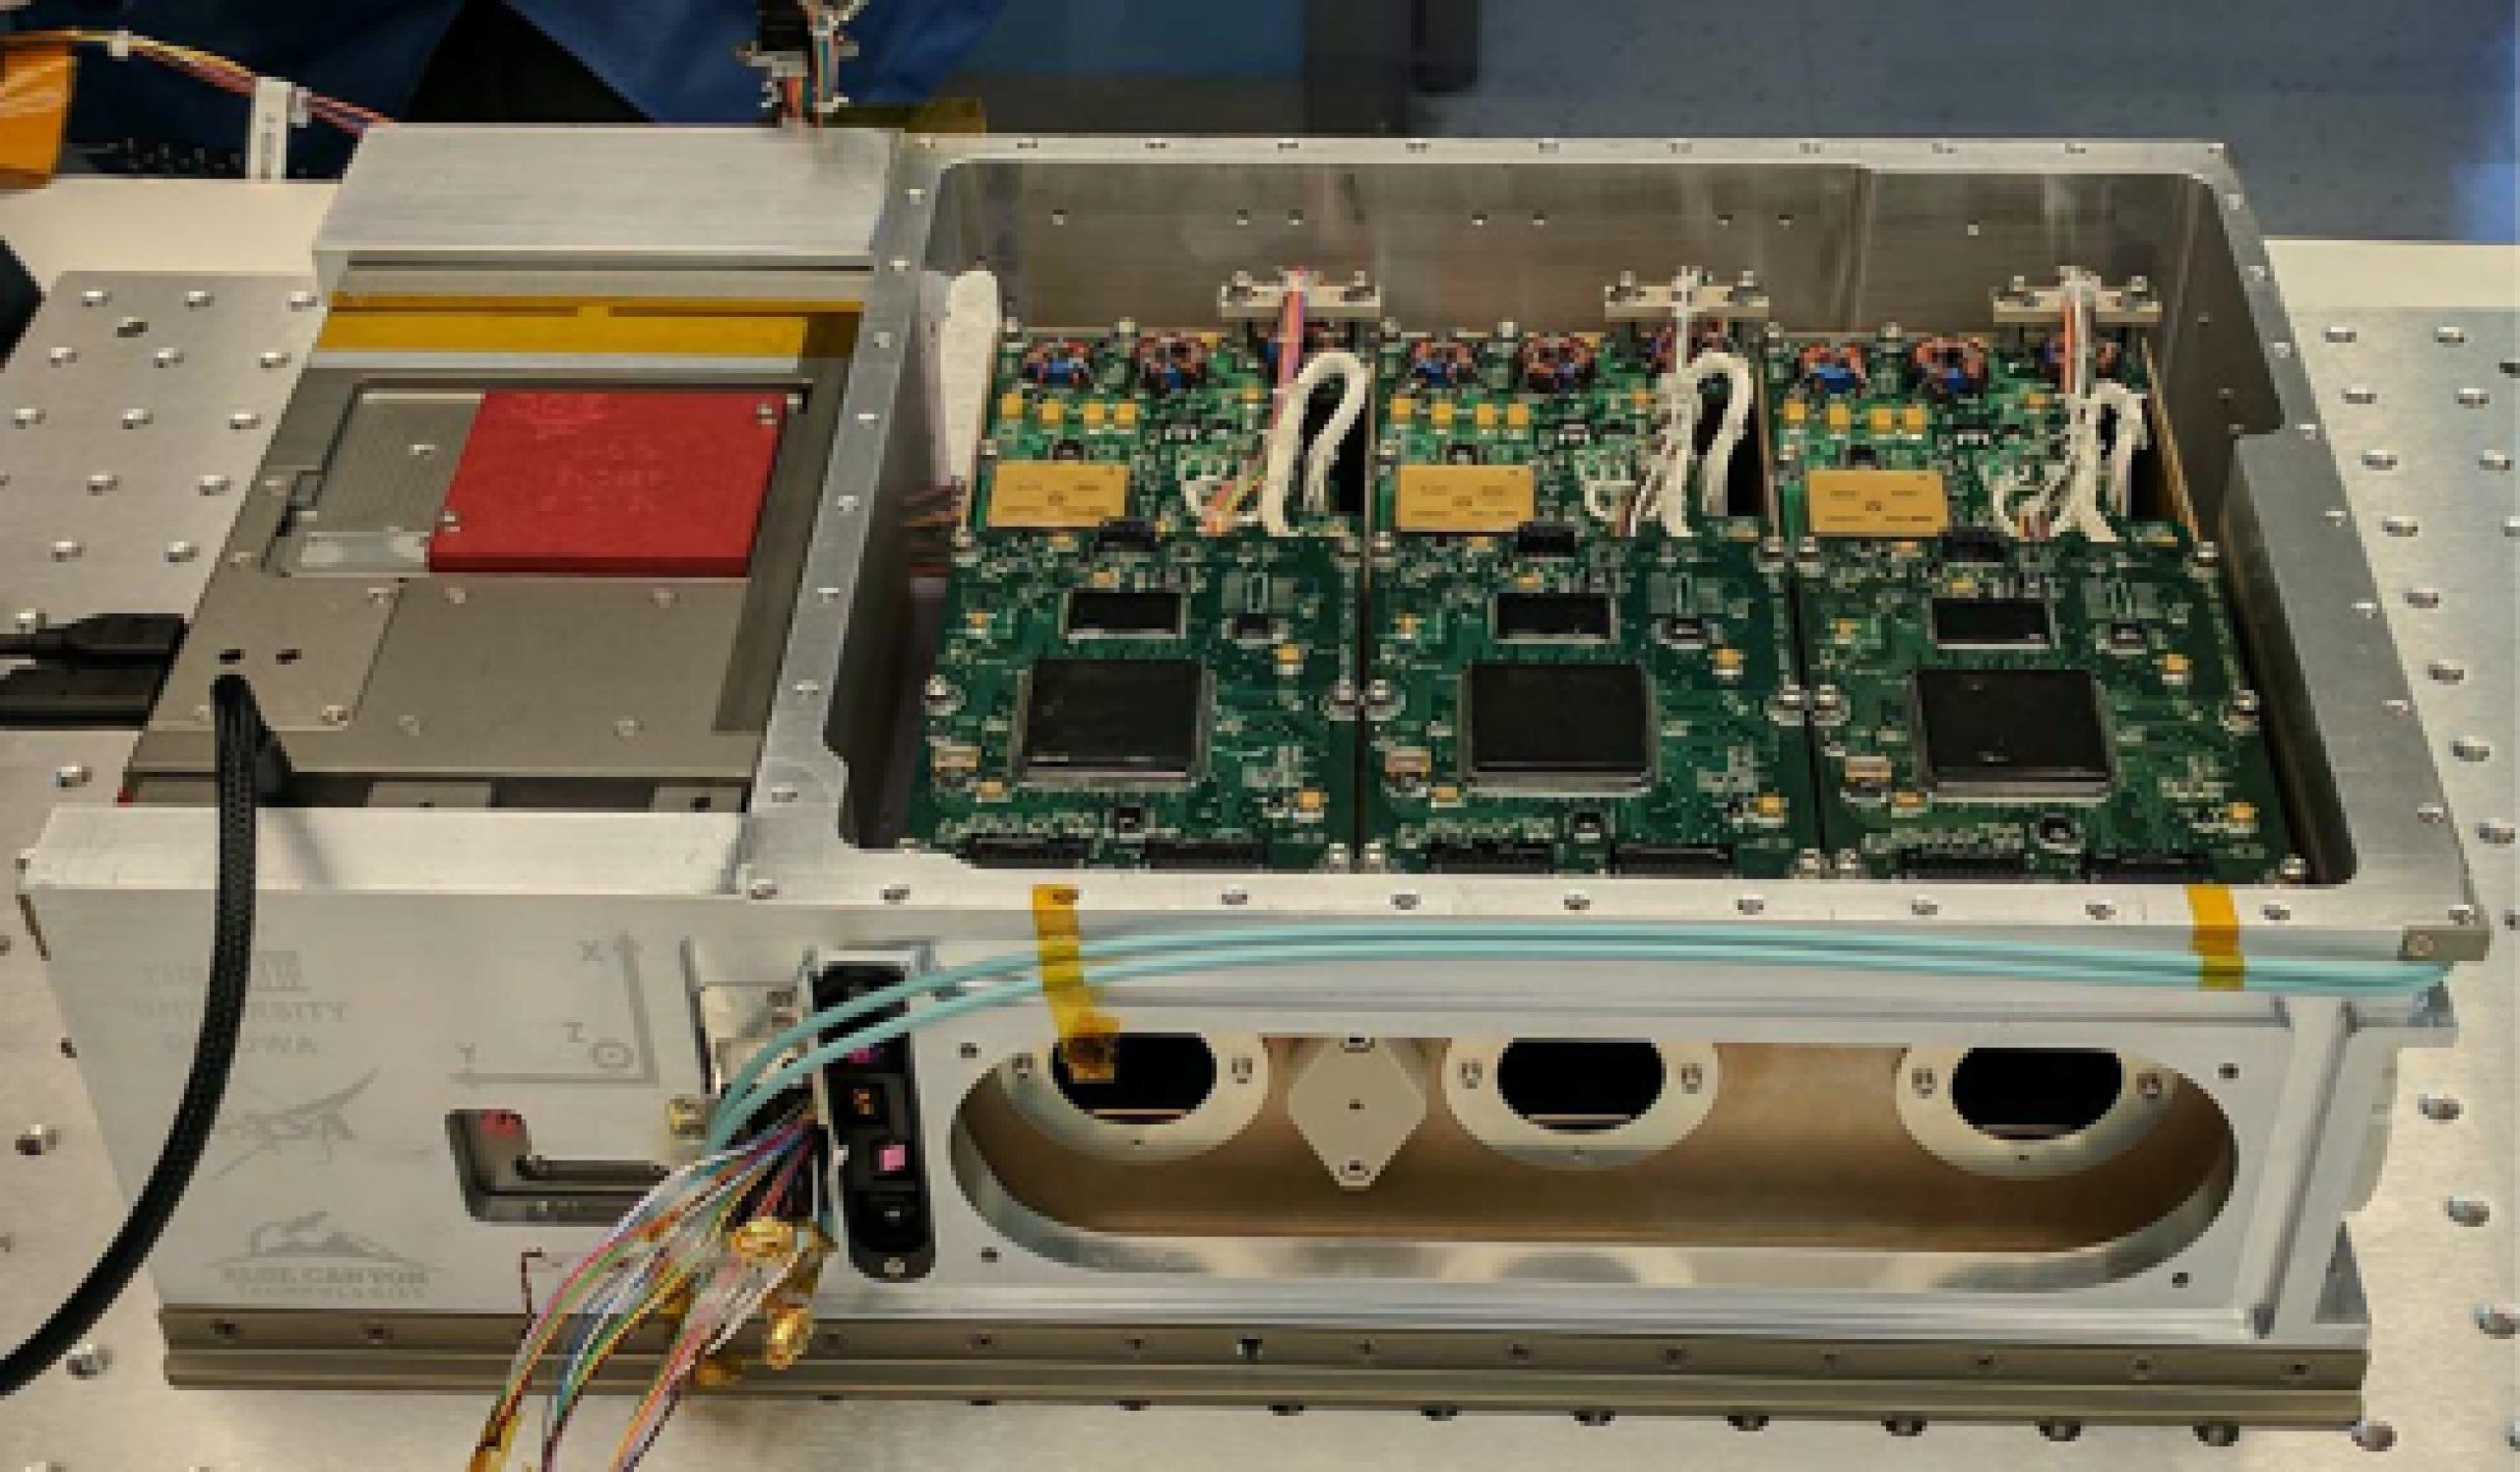 Photo of HaloSat hardware, a tan box on the left and electronic circuit boards and an Xray lens